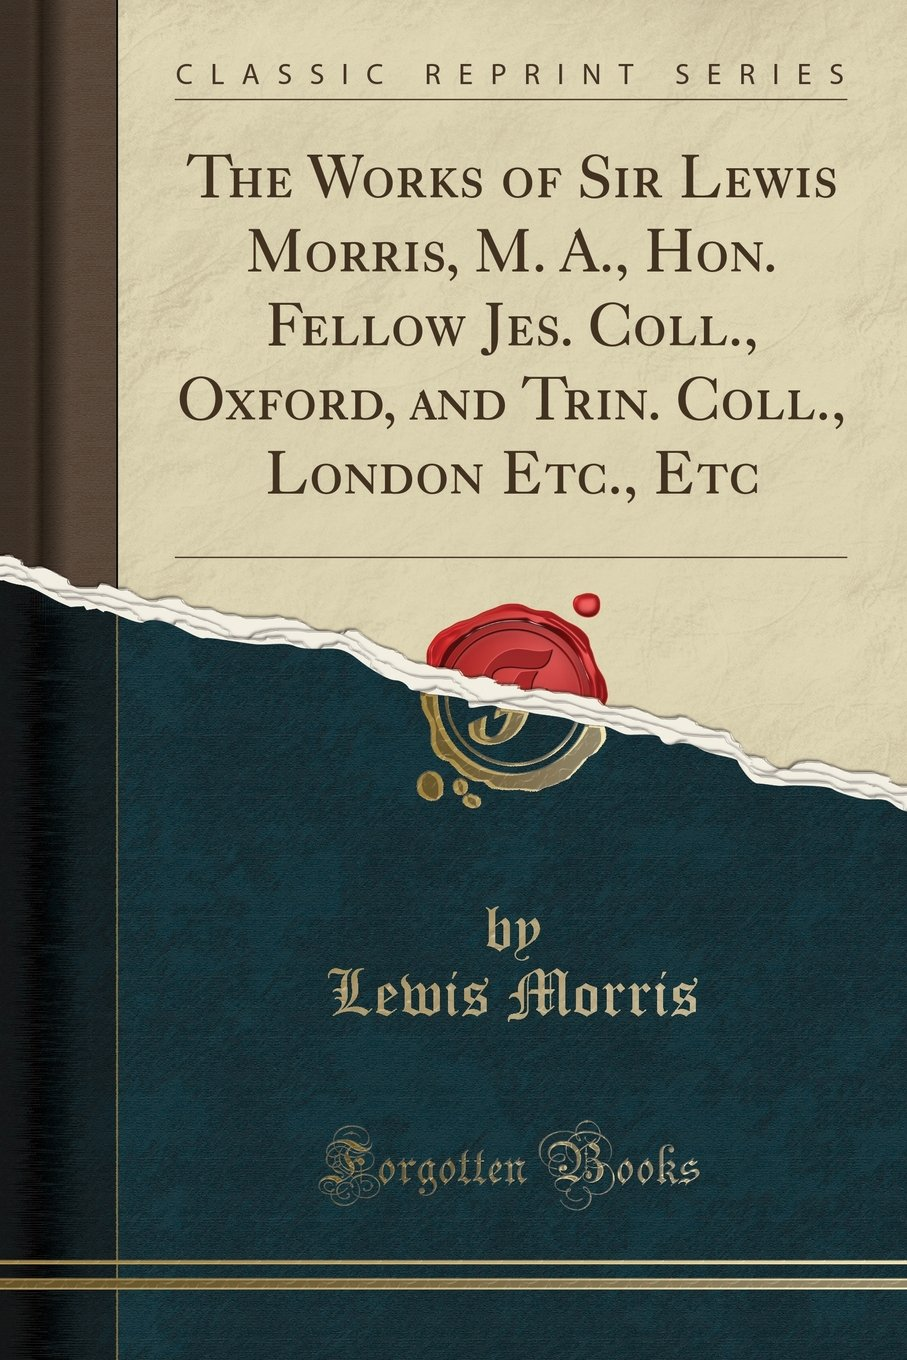 Download The Works of Sir Lewis Morris, M. A., Hon. Fellow Jes. Coll., Oxford, and Trin. Coll., London Etc., Etc (Classic Reprint) pdf epub